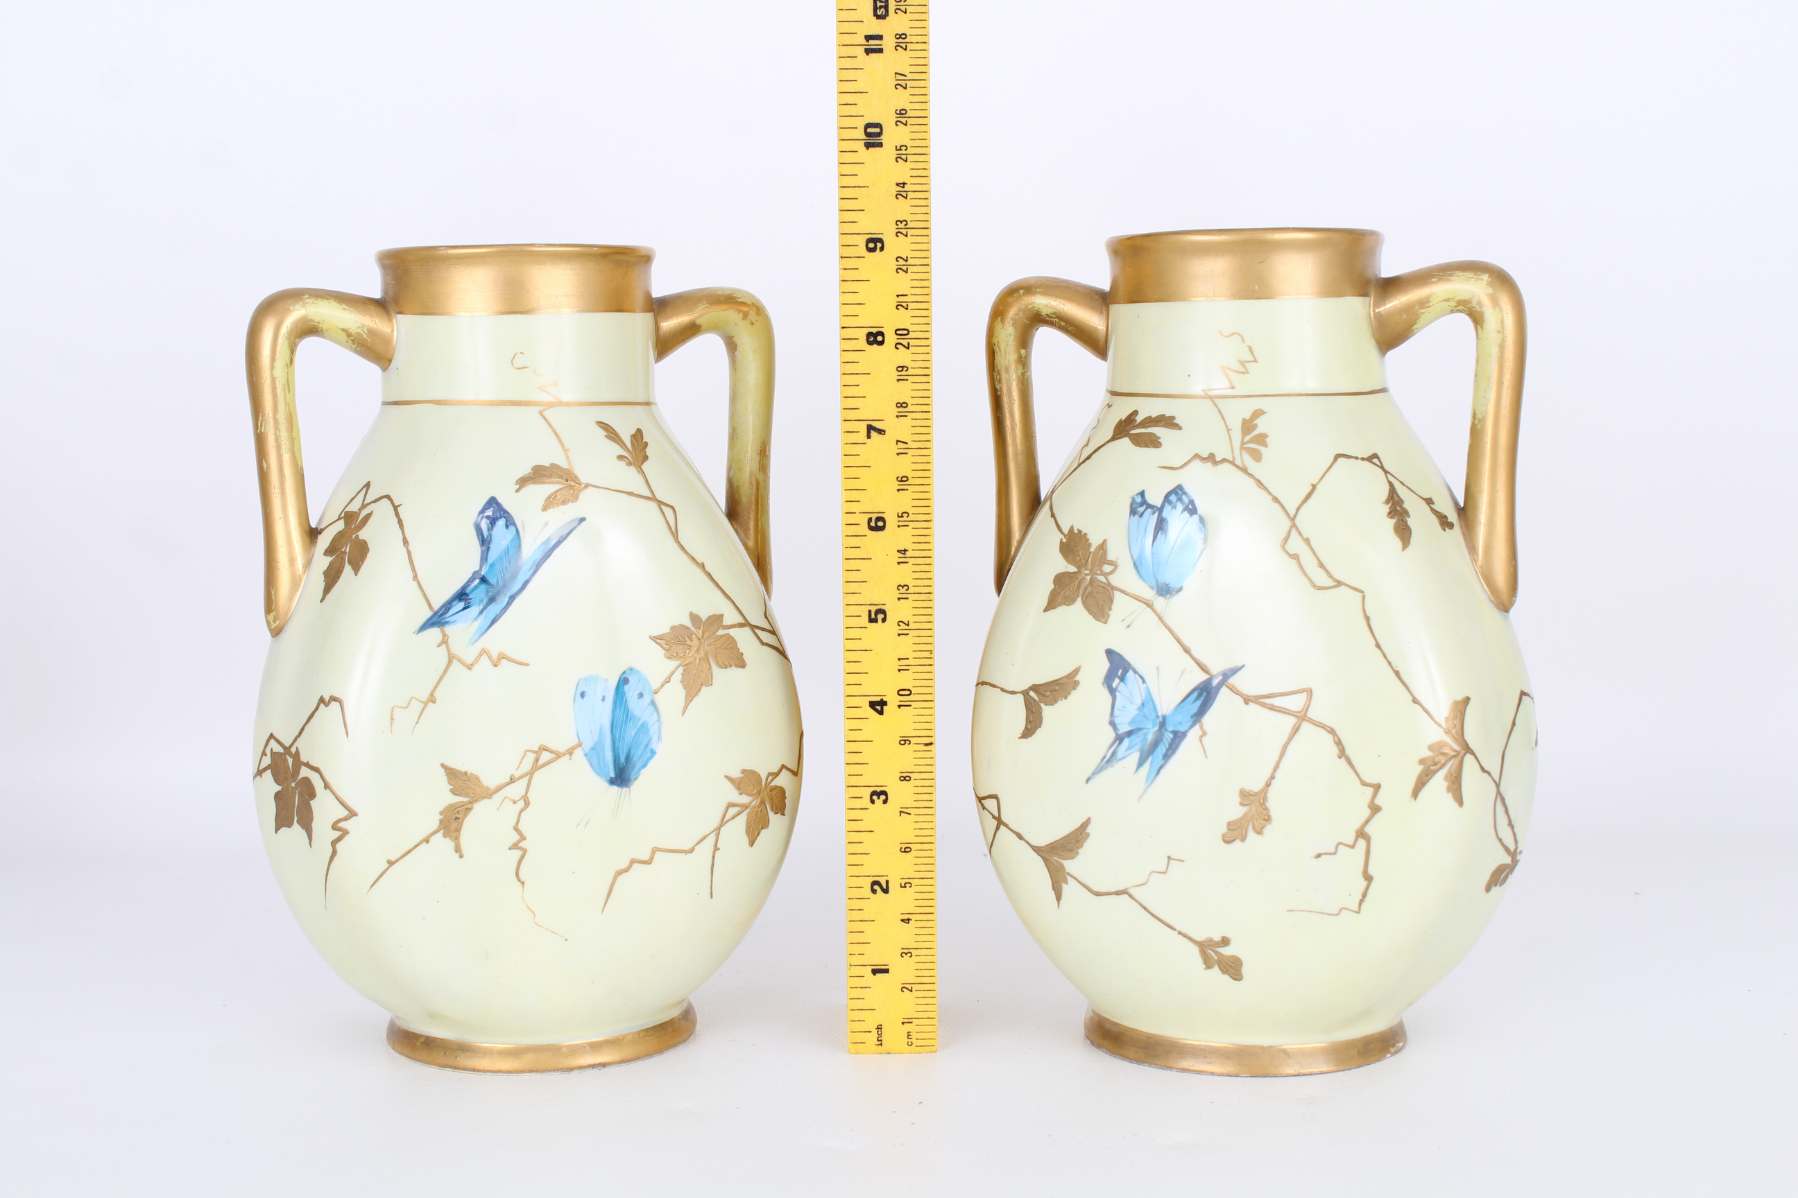 Pair, Antique French Aesthetic Period Vases - Image 3 of 3